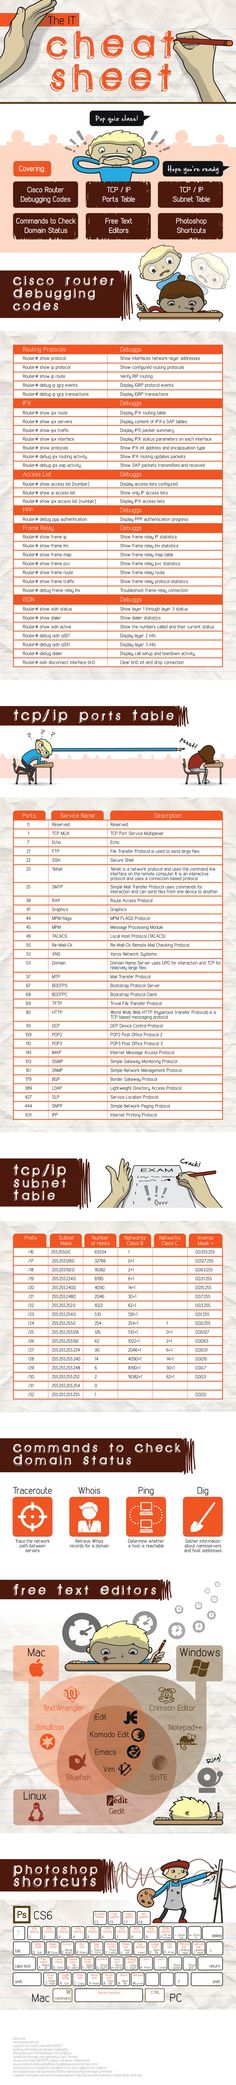 IT Cheat Sheet. Information Technology Shortcuts and Helpful Codes IT Cheat Sheet. Information Technology Shortcuts and Helpful Codes Computer Technology, Computer Programming, Computer Science, Energy Technology, Web Design, Cisco Networking, Network Engineer, Computer Network, Computer Hardware